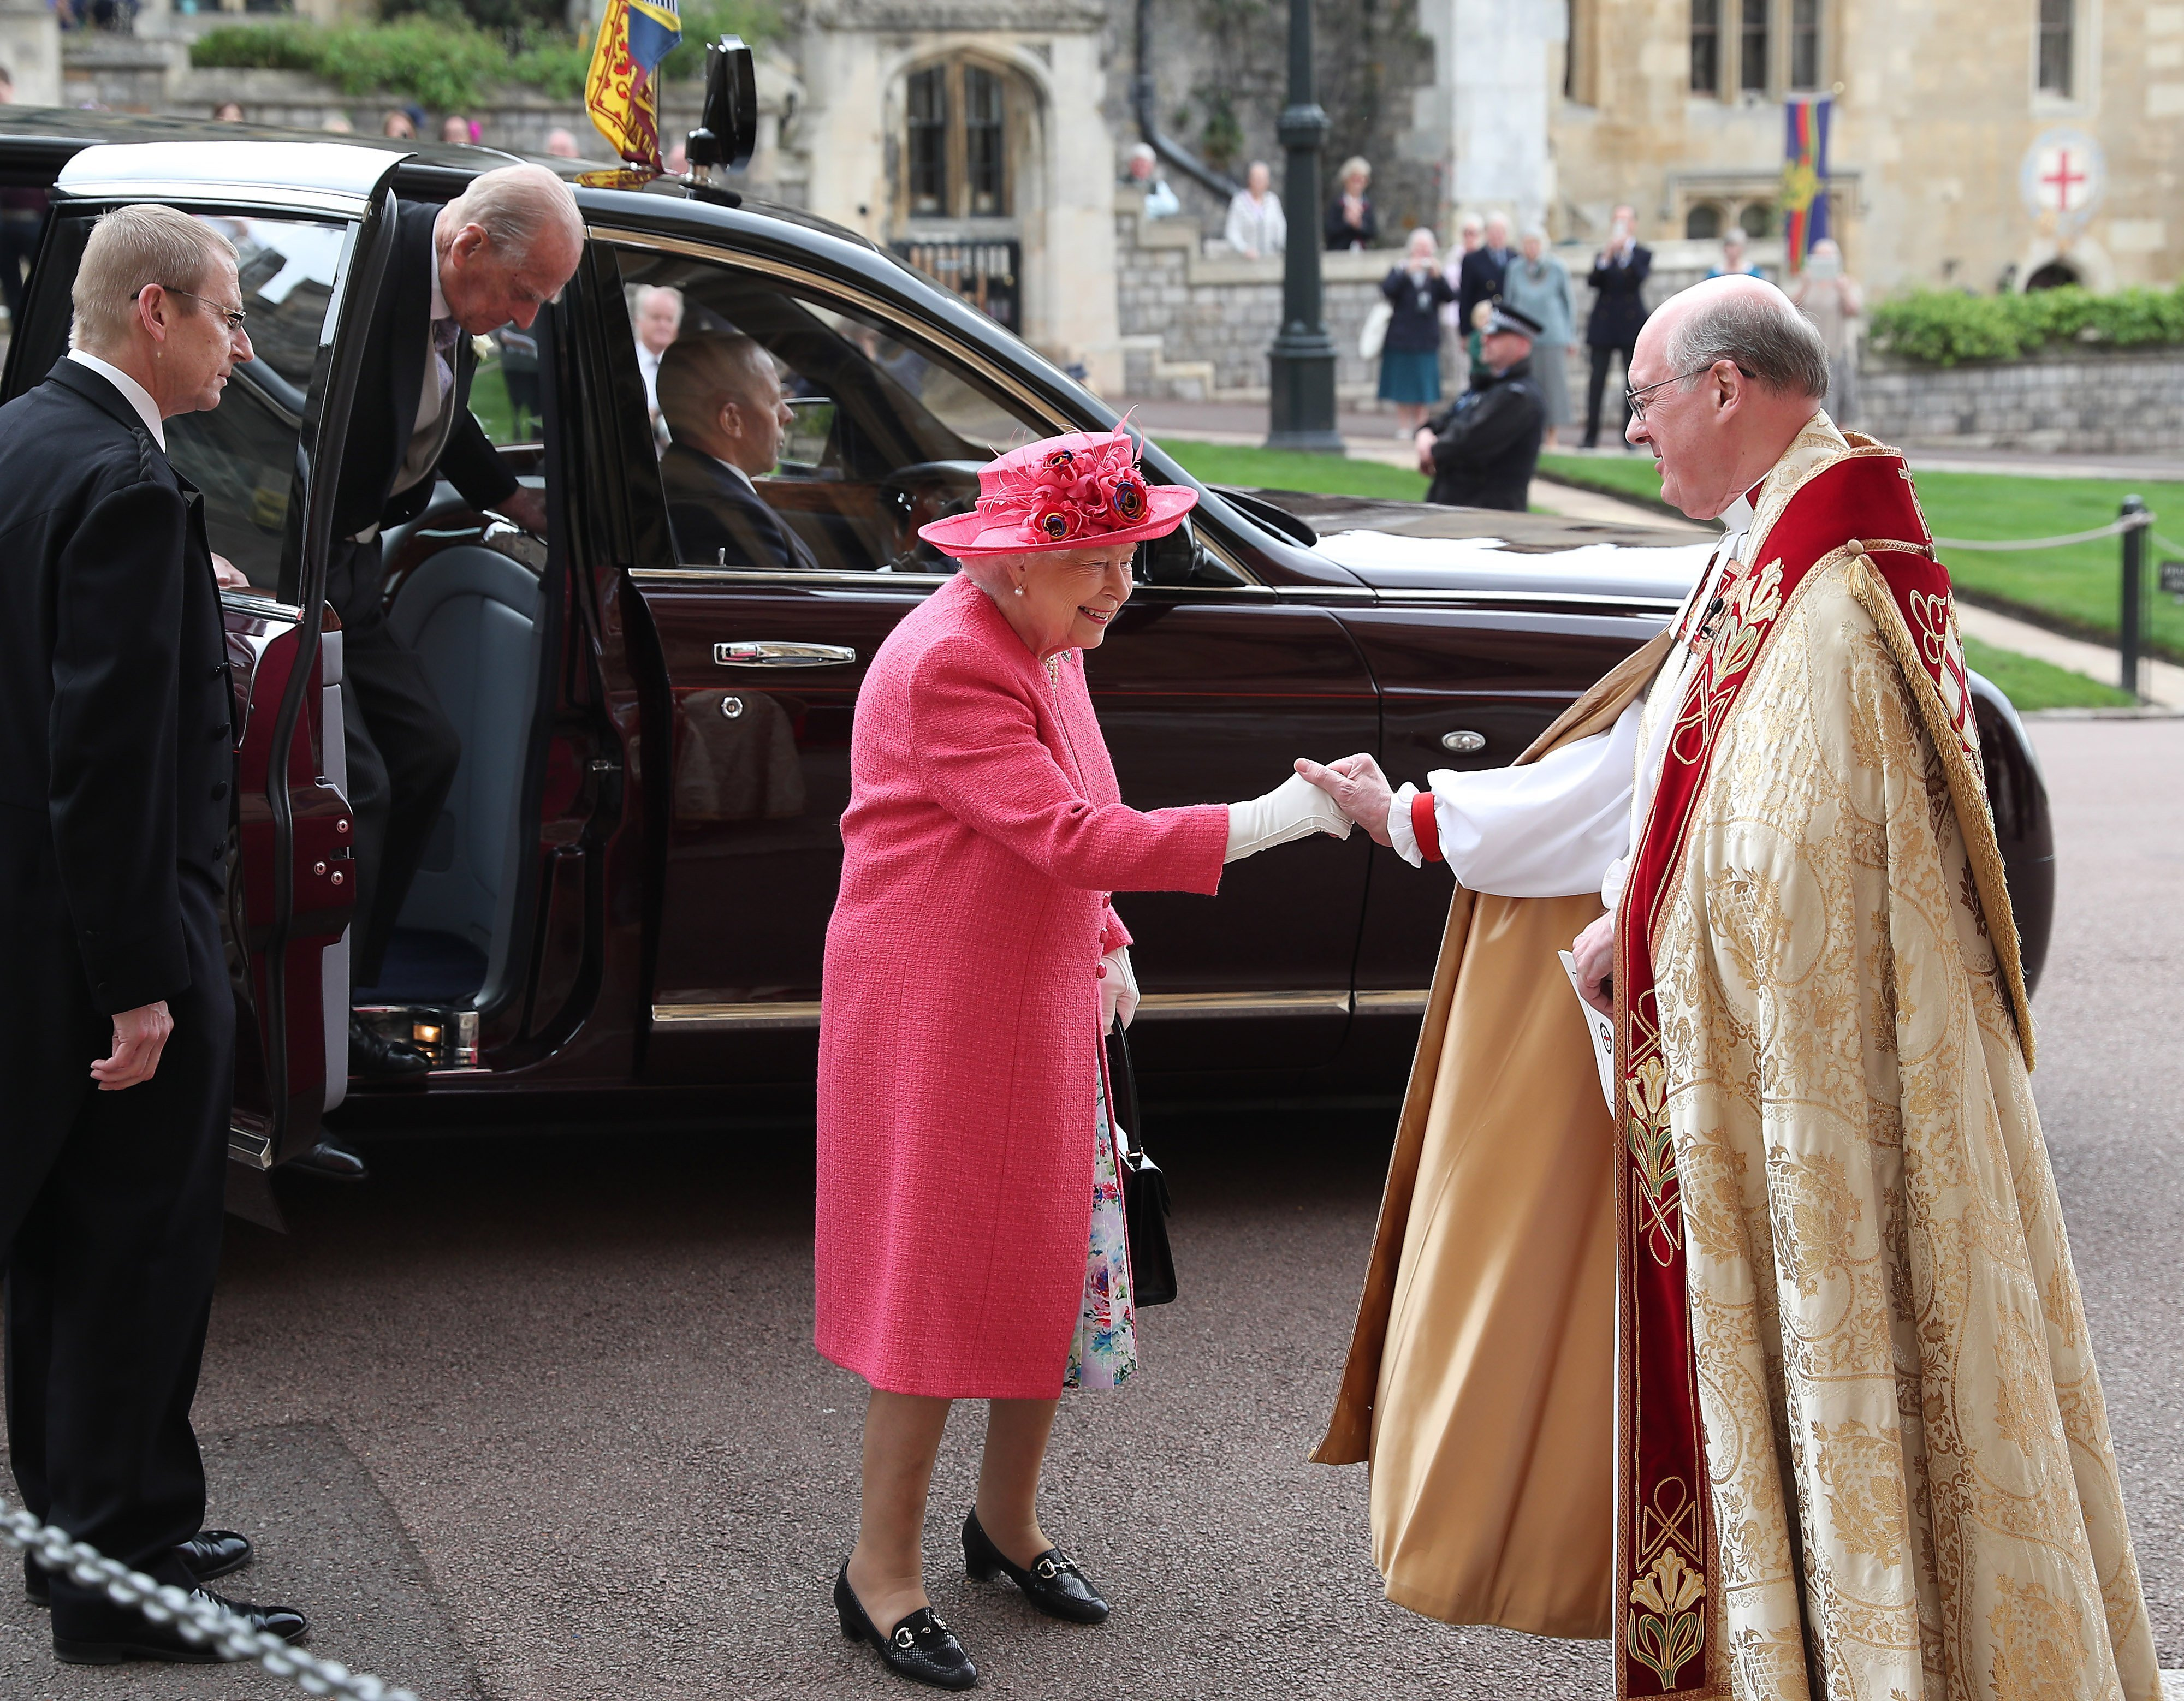 Queen Elizabeth II and Prince Philip arriving at St George's Chapel in Windsor Castle, England | Photo: Getty Images